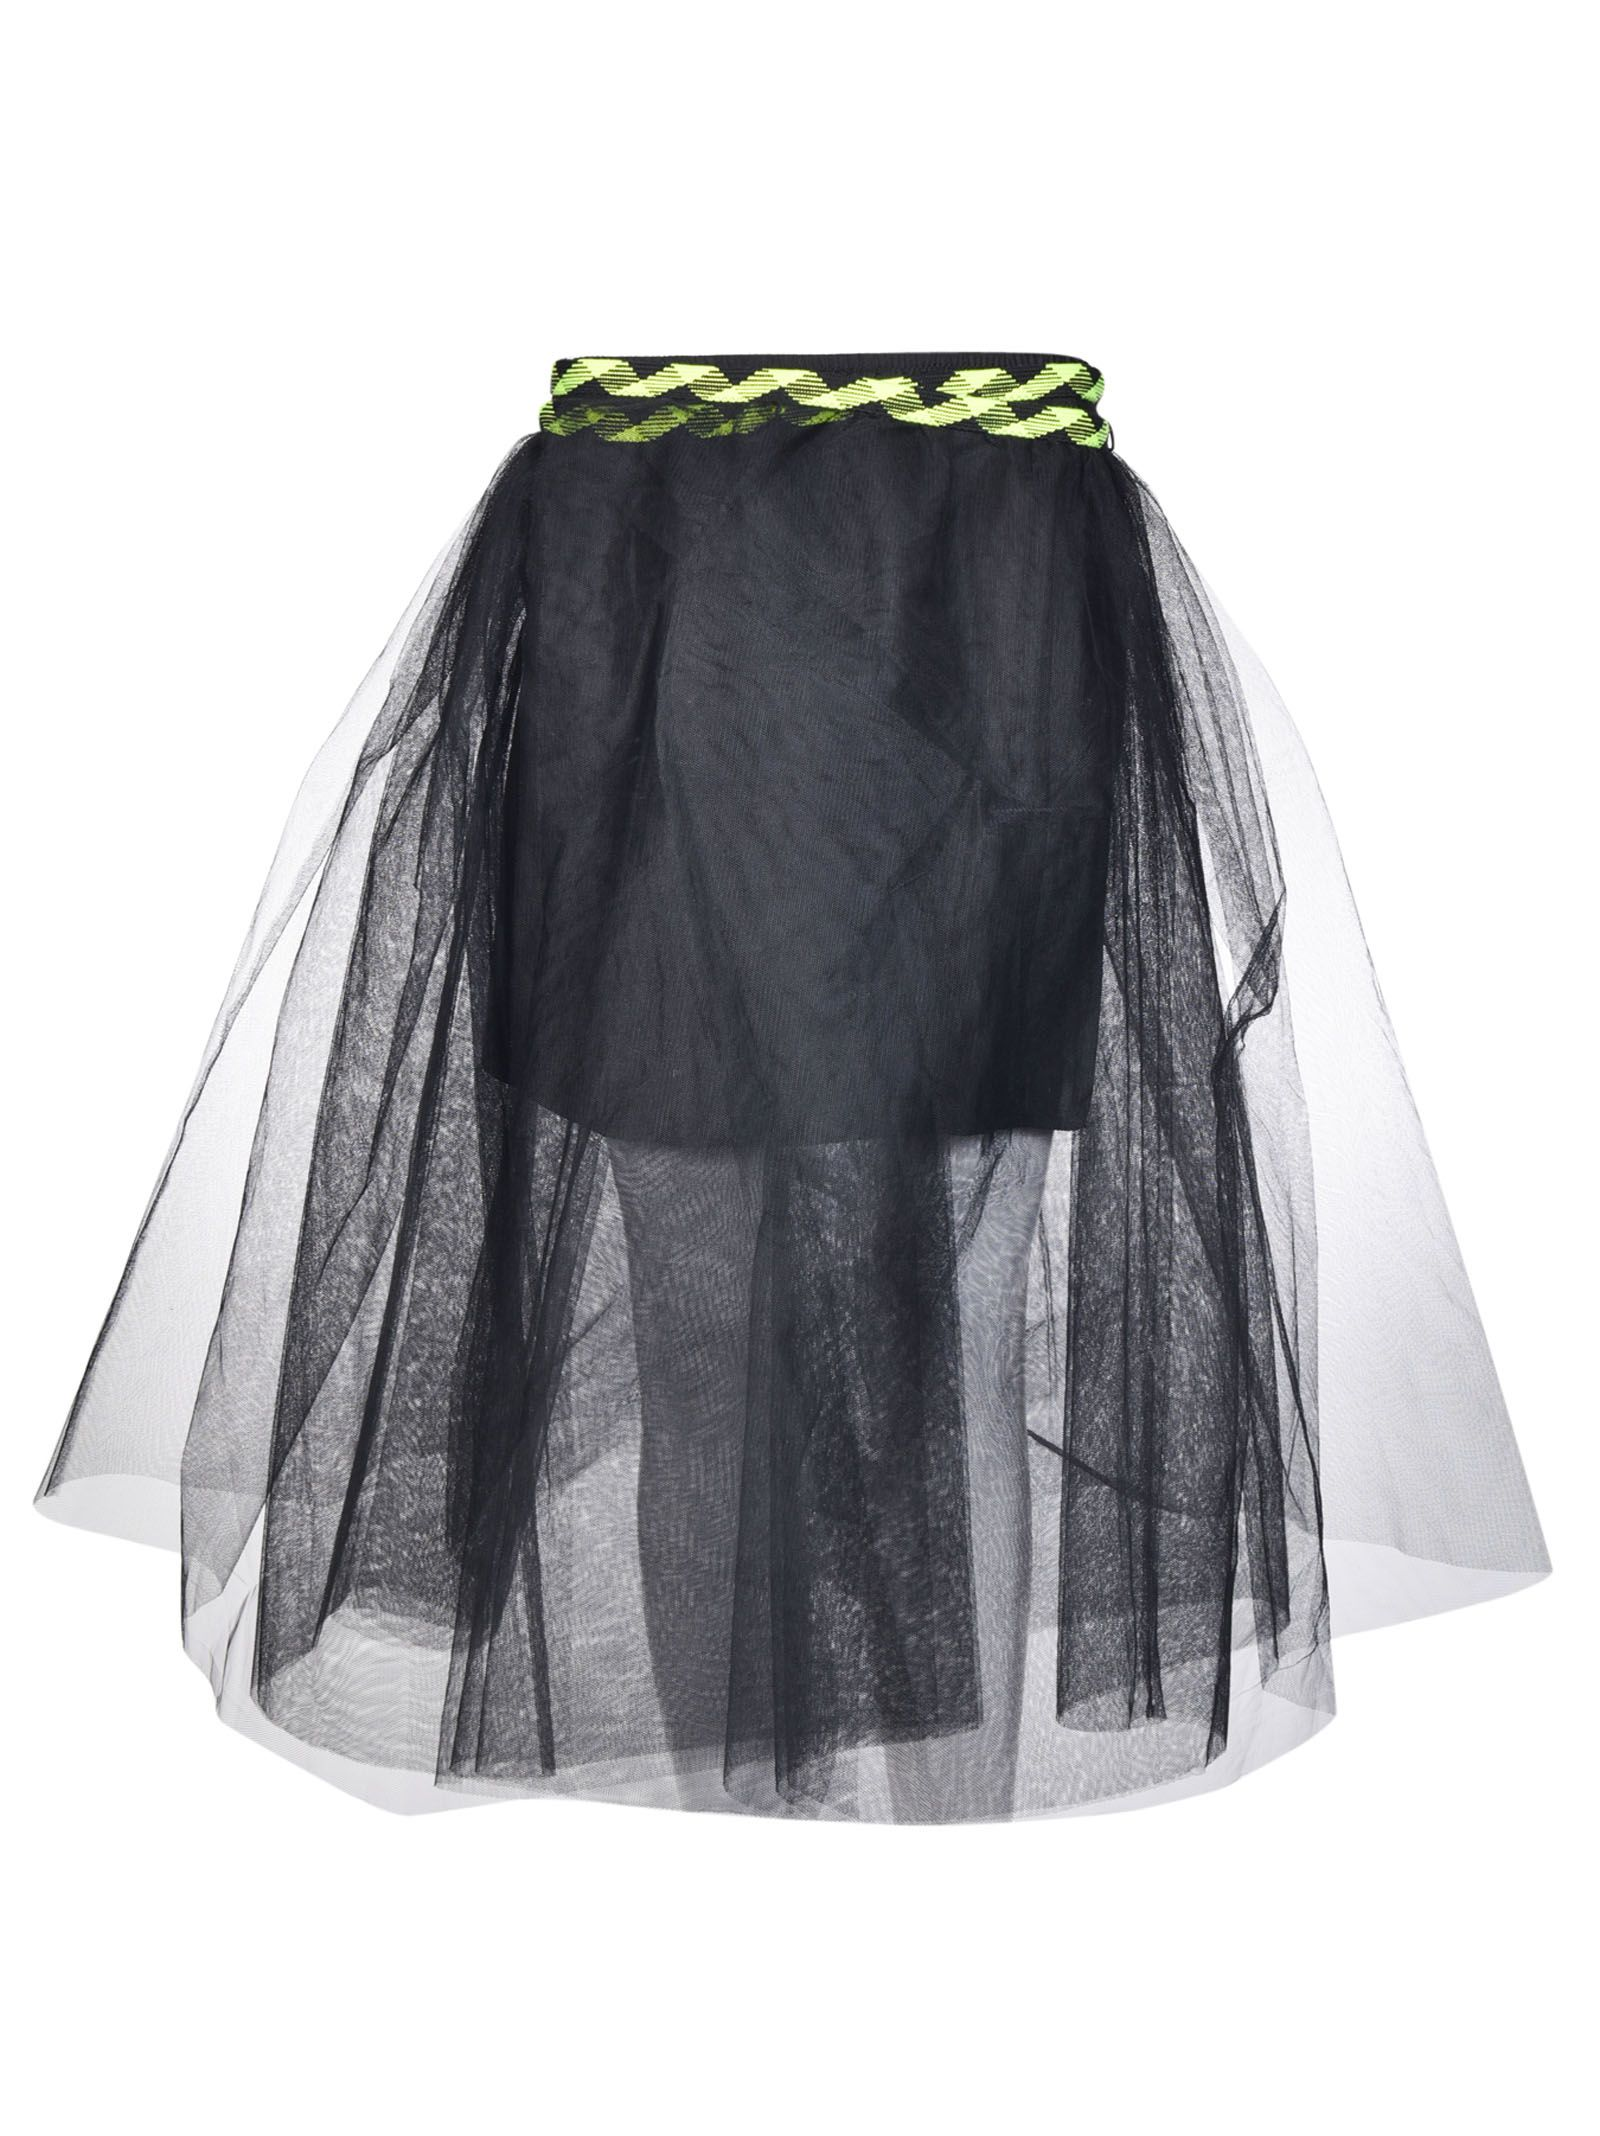 marc jacobs female marc jacobs full tulle skirt